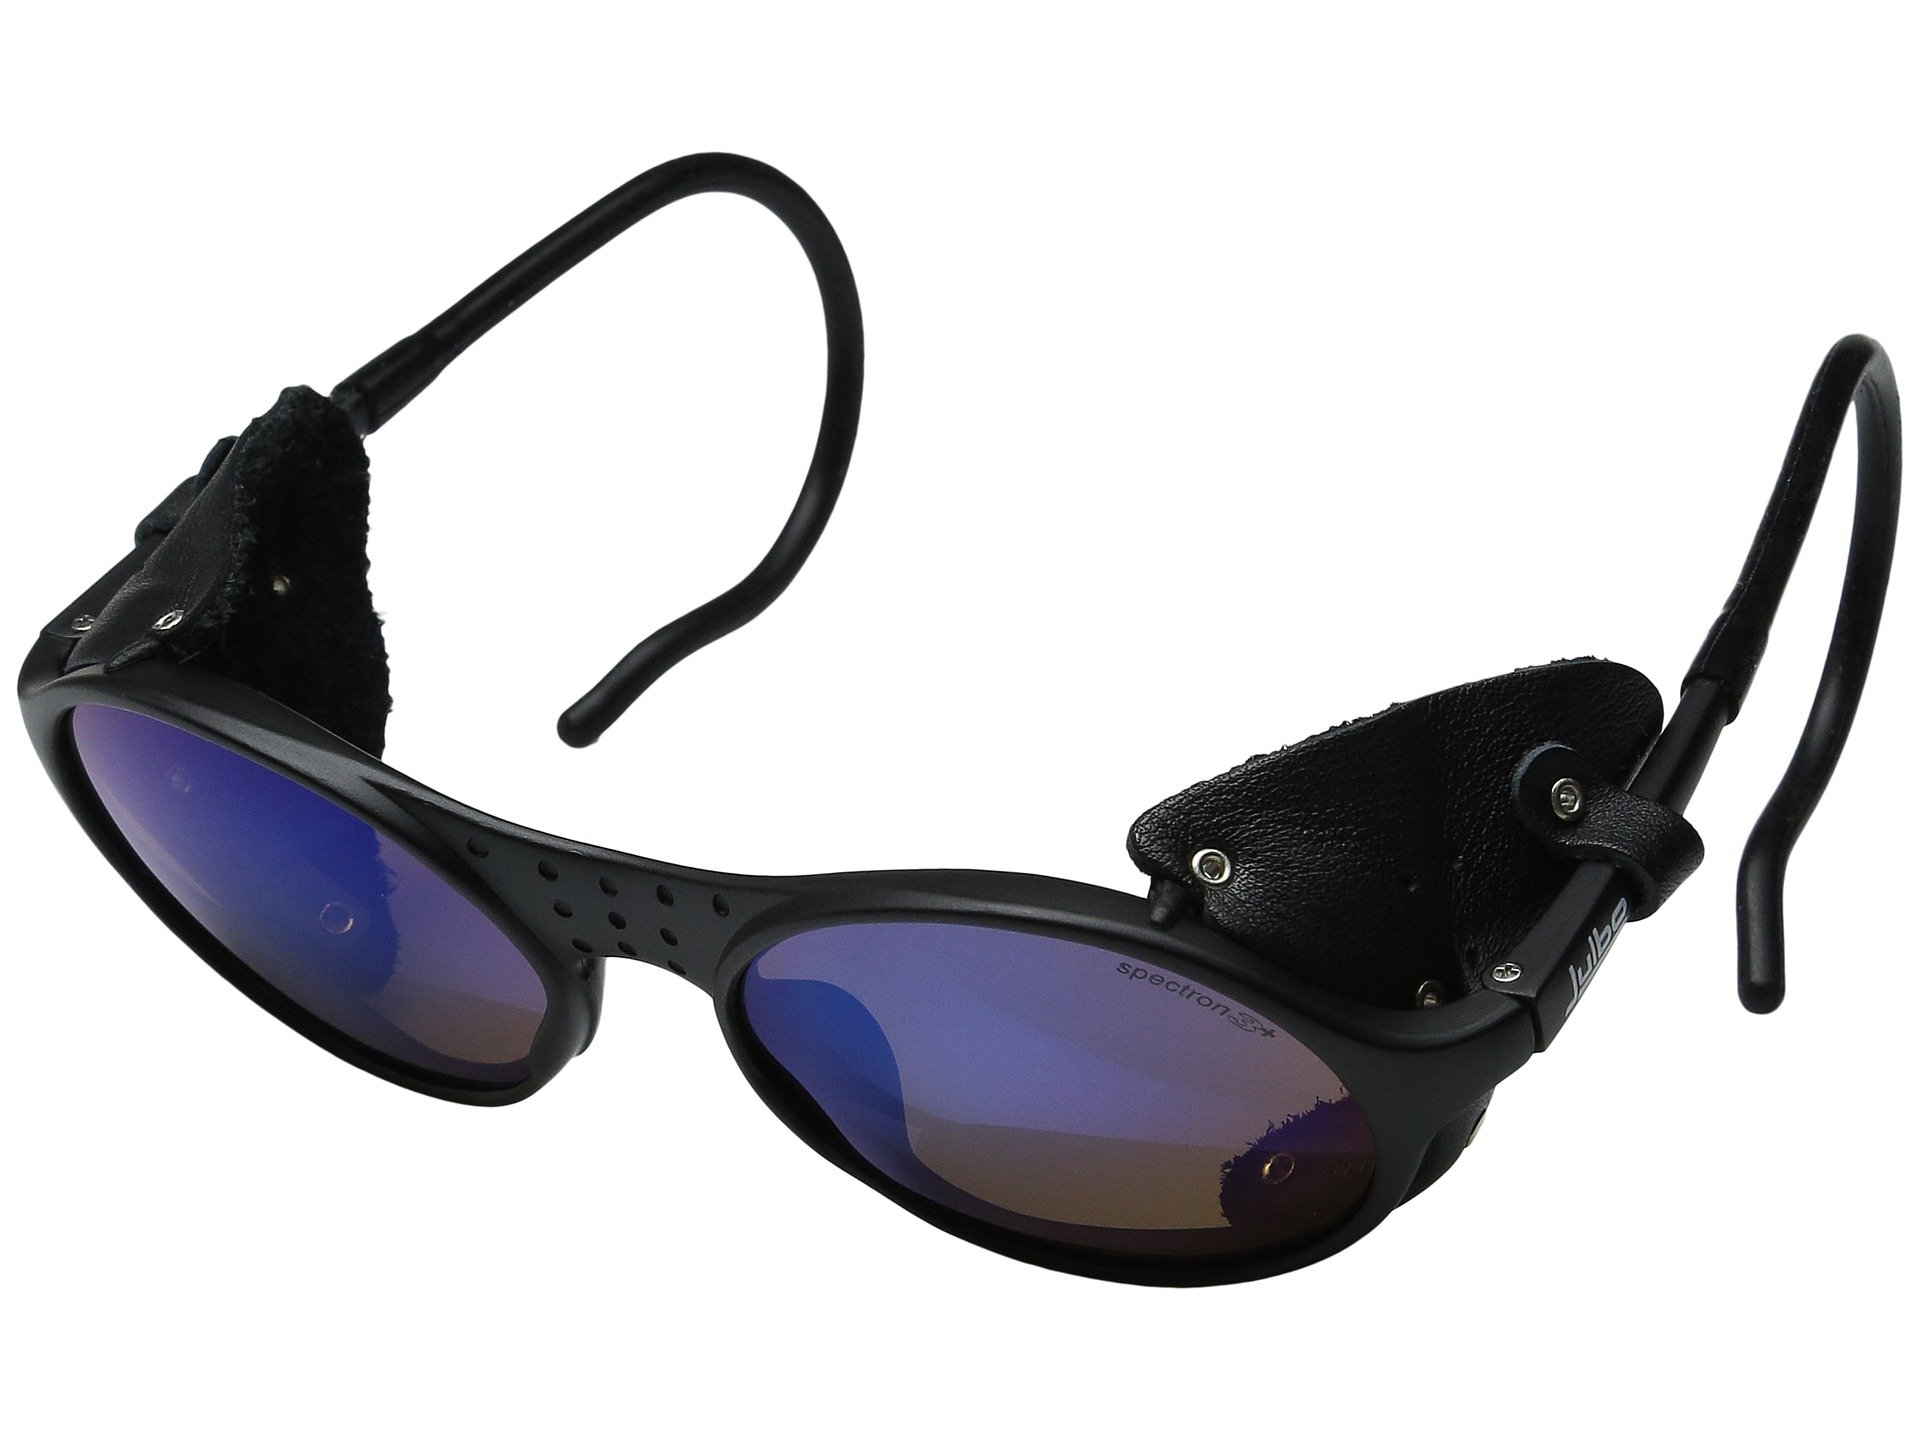 94fec33184113 Julbo Eyewear. Resist.  110.00. Black With Spectron 3 Lens